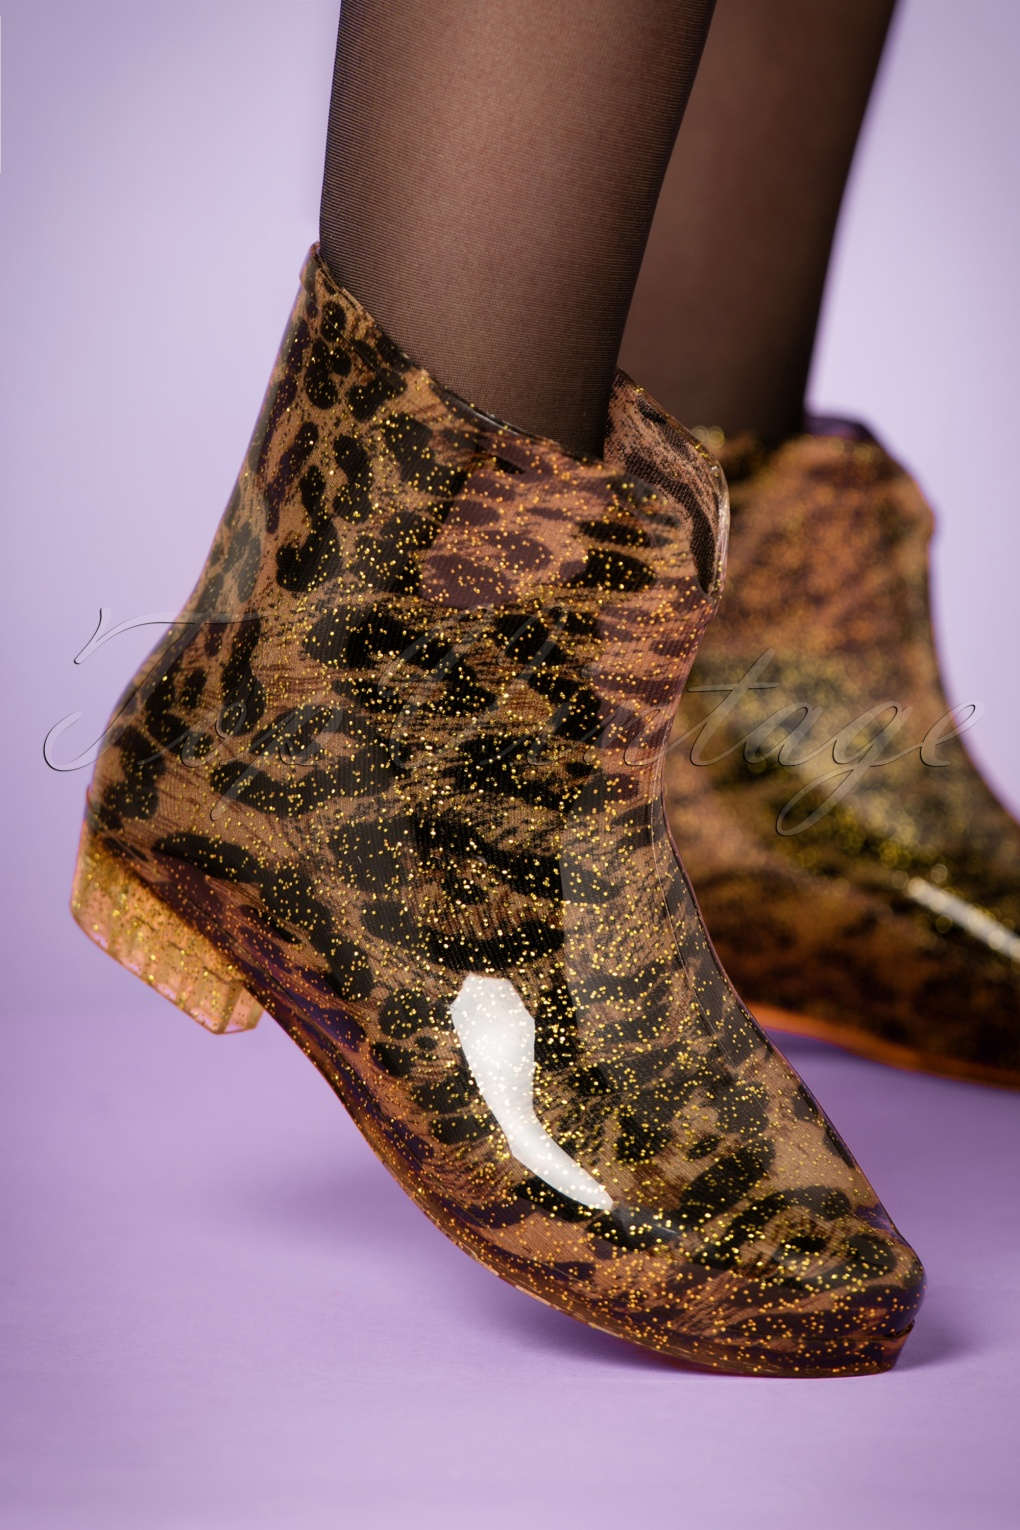 Vintage Style Shoes, Vintage Inspired Shoes 60s Leopard and Glitter Short Rain Boots £26.65 AT vintagedancer.com